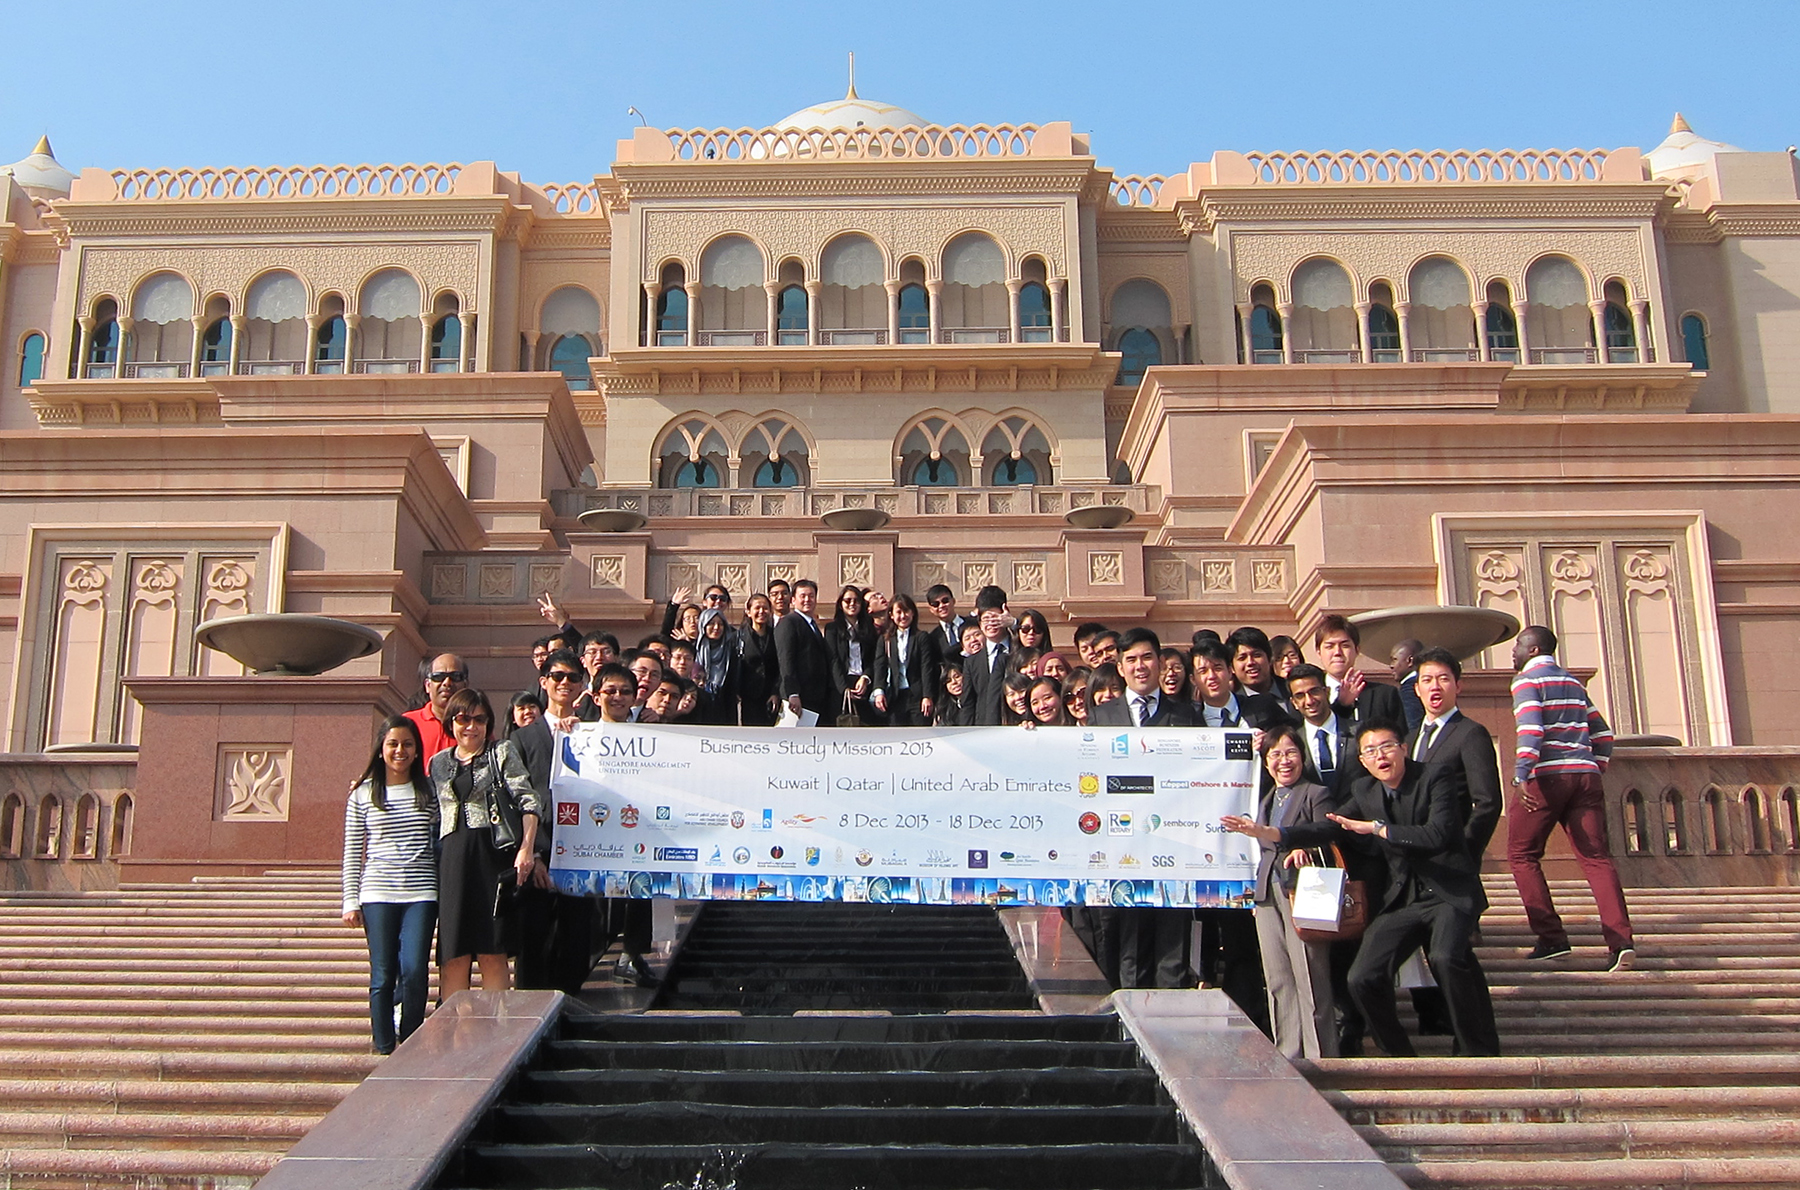 SMU Business Study Mission to the Middle East 2013